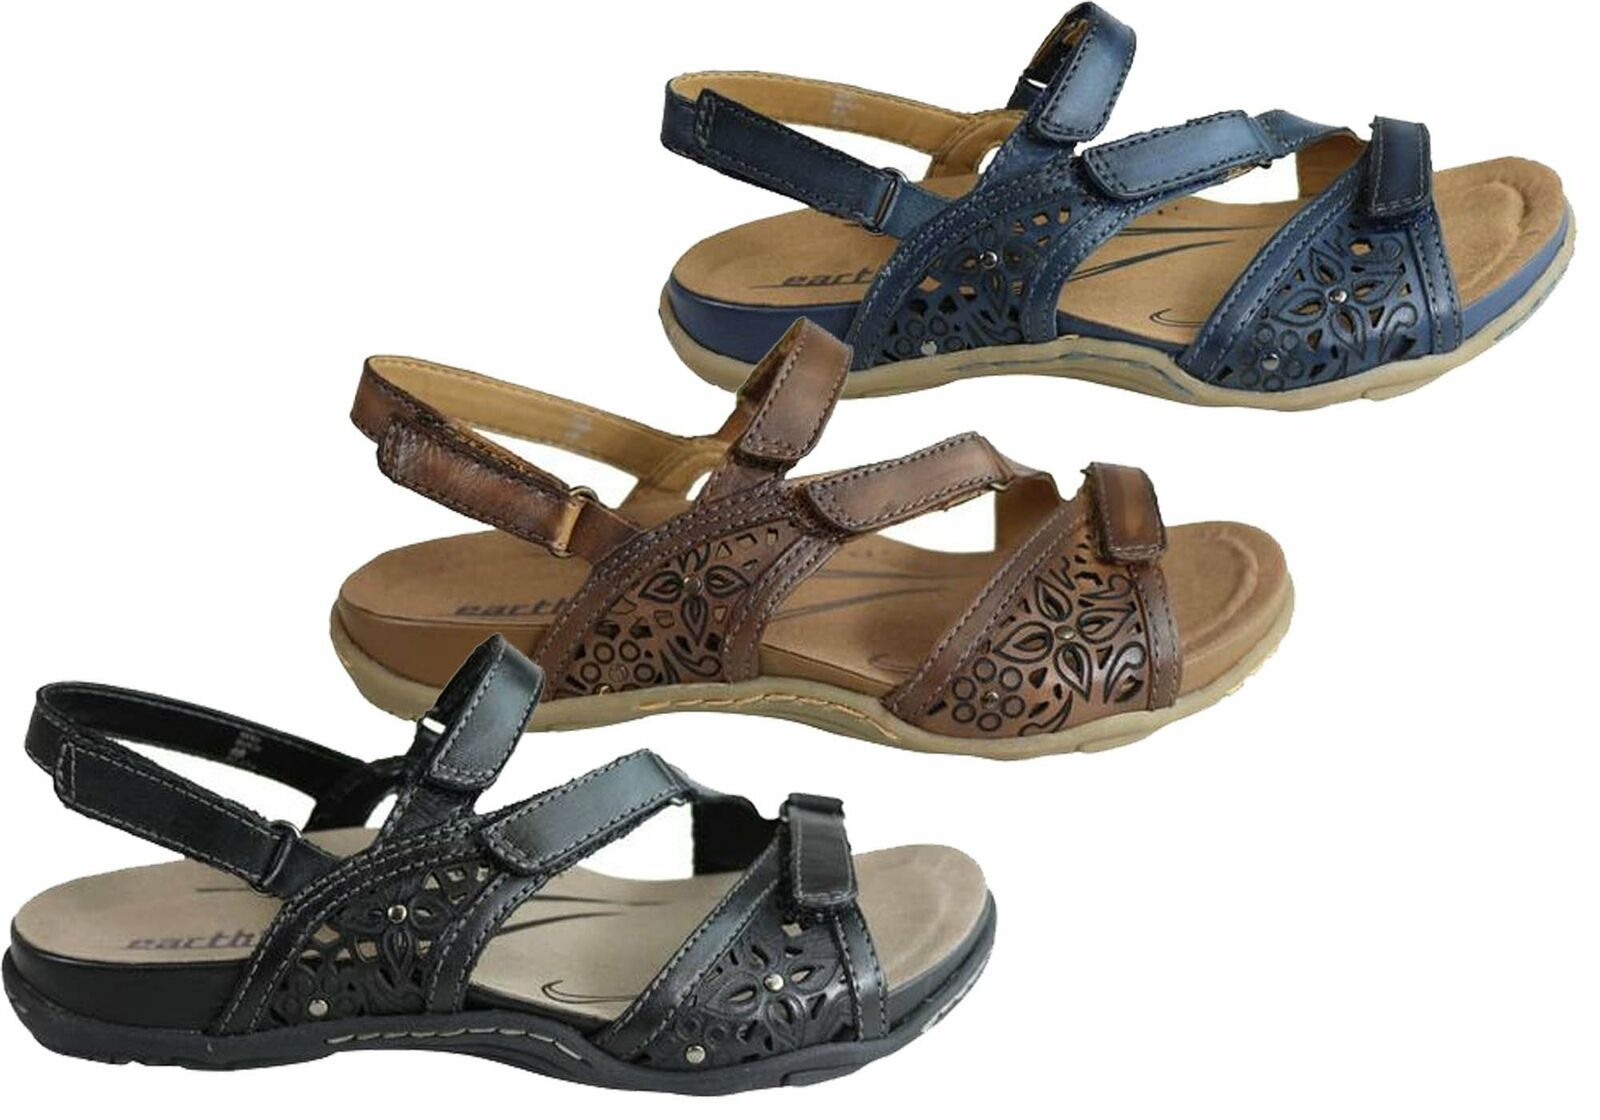 Brand New Earth Maui 2 damen Comfortable Supportive Flat Leather Sandals